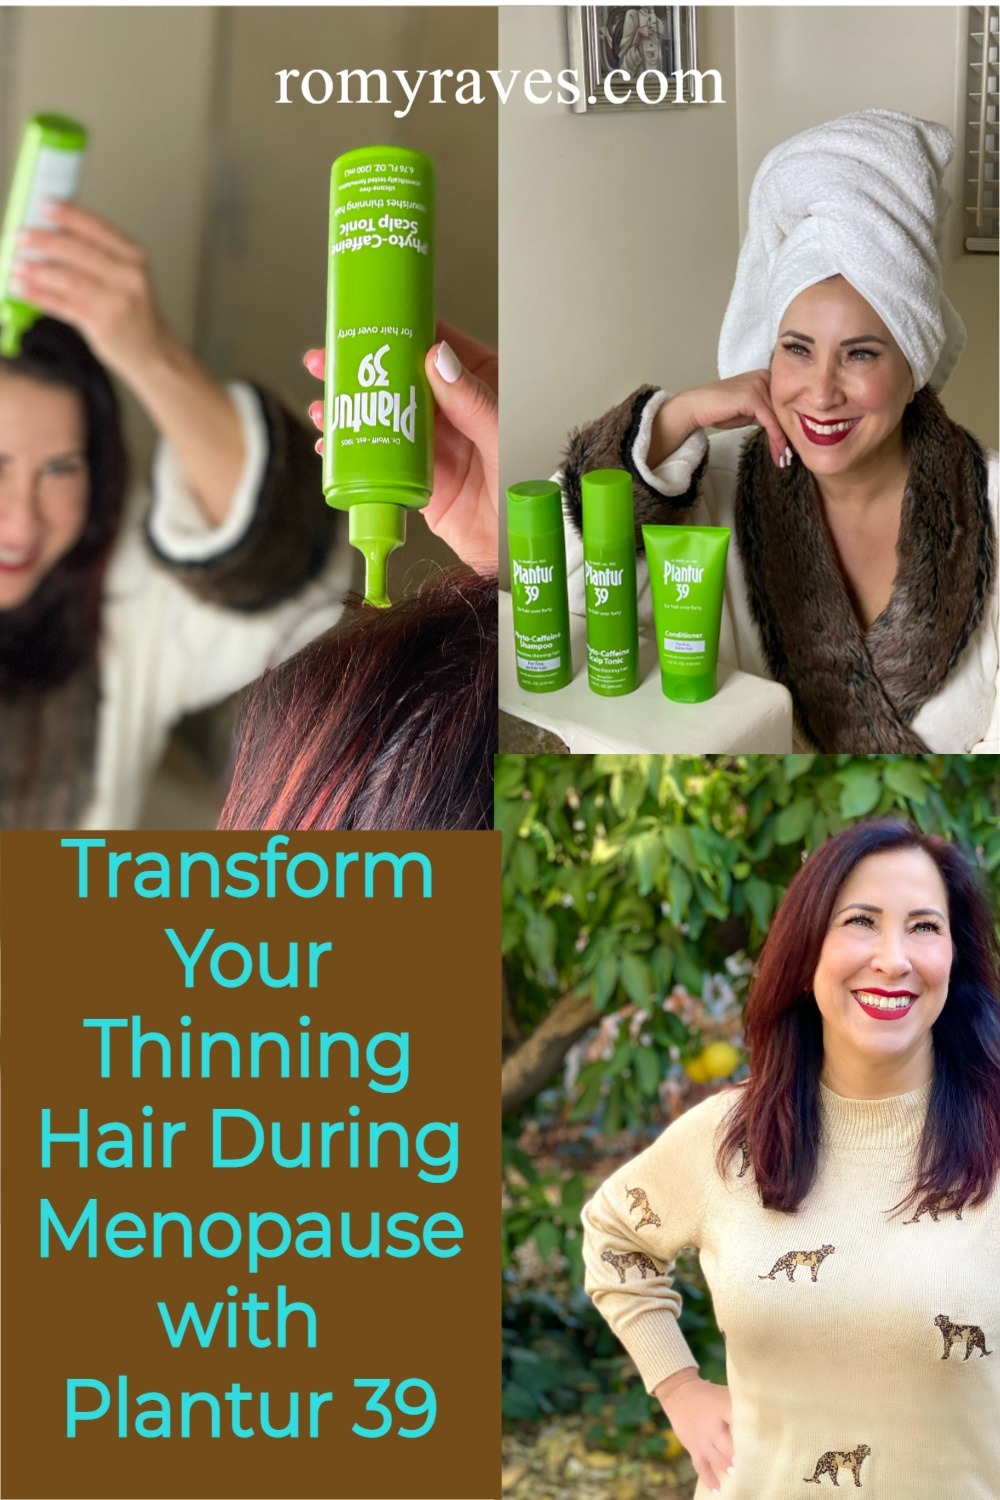 I'm excited to share Plantur 39 ~ innovative hair care products made with a caffeine complex that transforms thinning hair during menopause